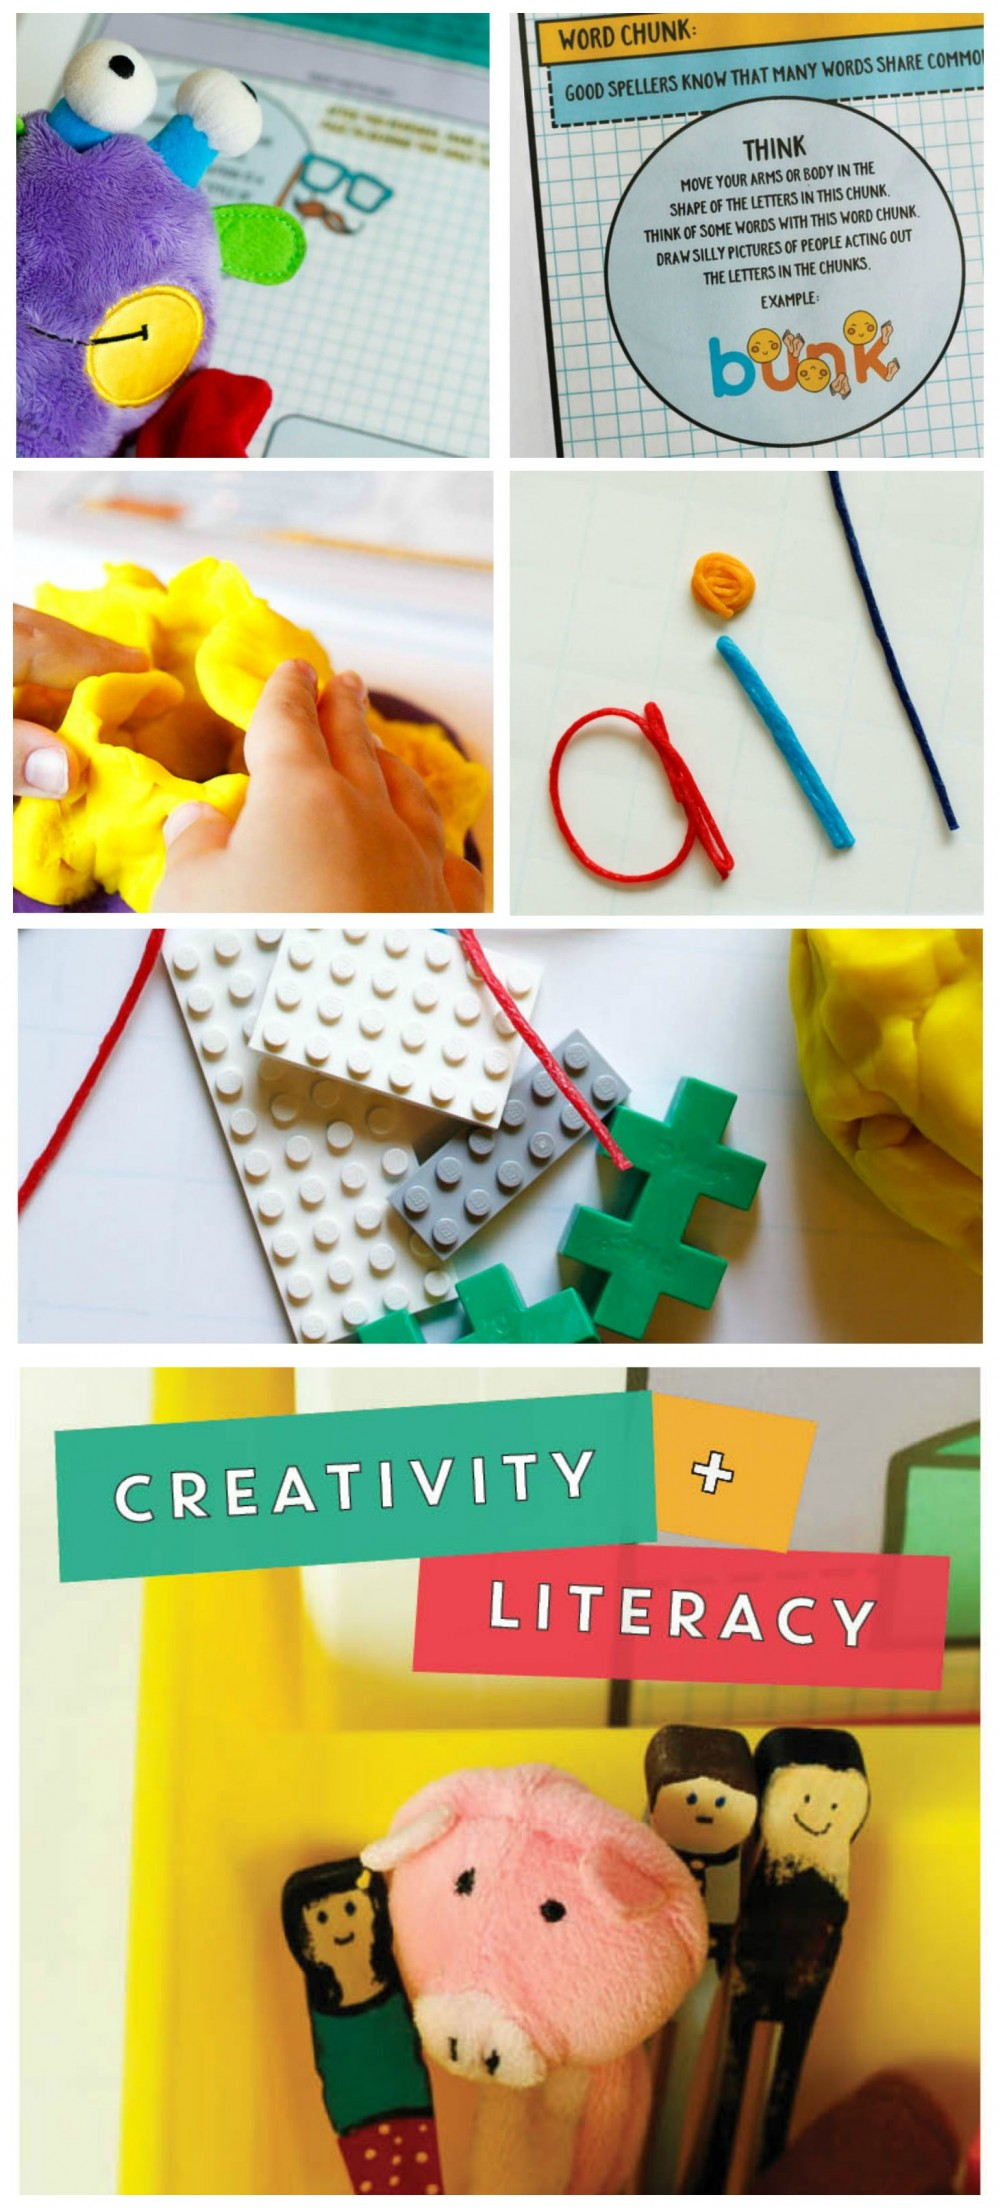 Creativity and Literacy